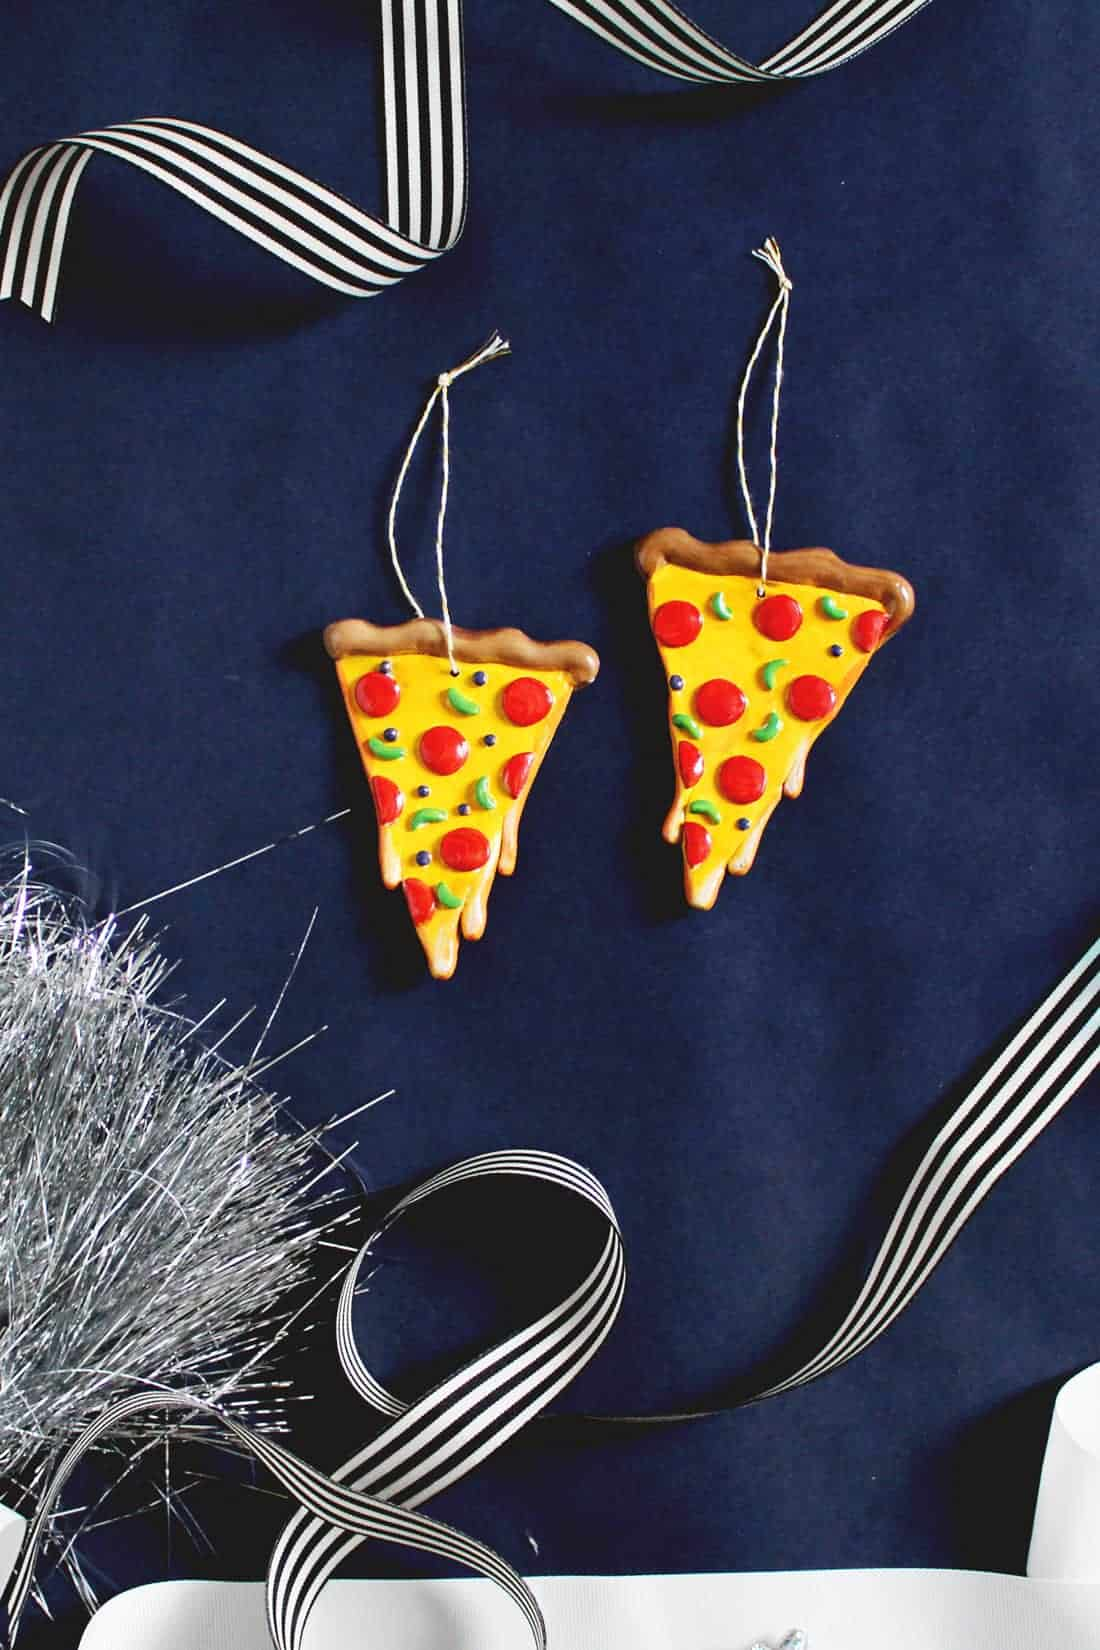 DIY Cheesy Pizza Ornament for Christmas